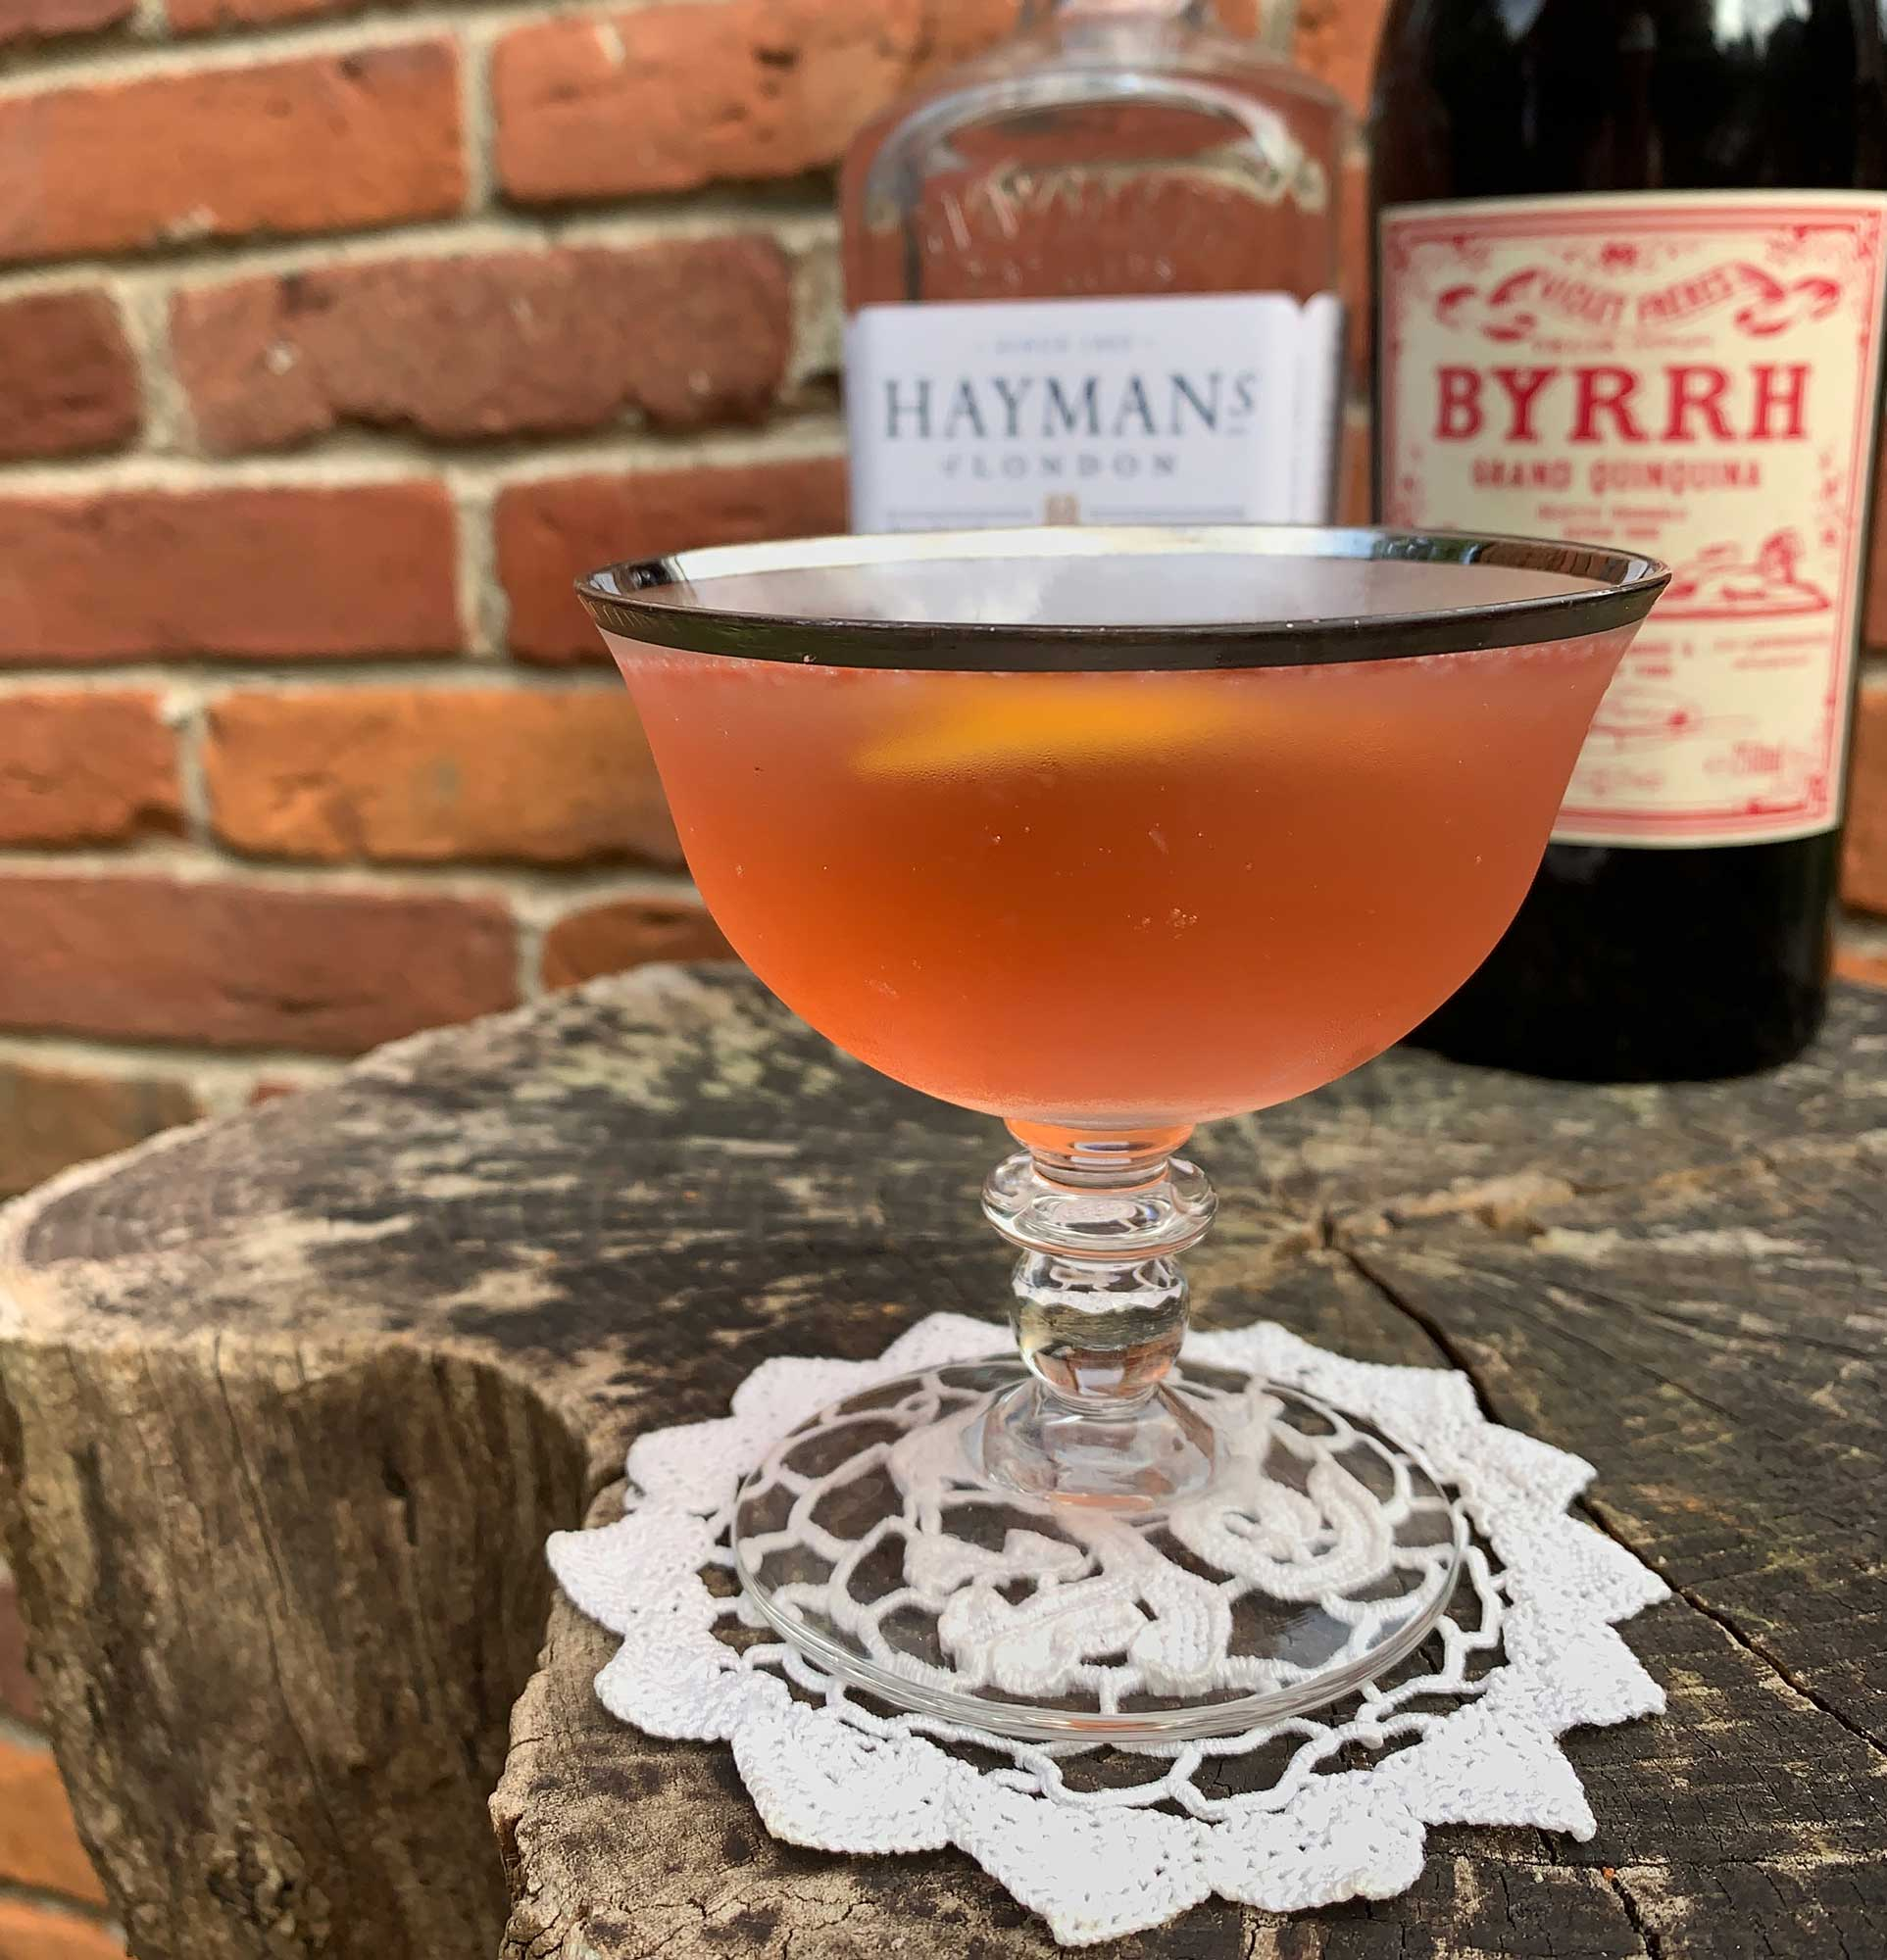 An example of the Byrrh Special, the mixed drink (cocktail) featuring Hayman's Royal Dock Navy Strength Gin, Byrrh Grand Quinquina, and lemon juice